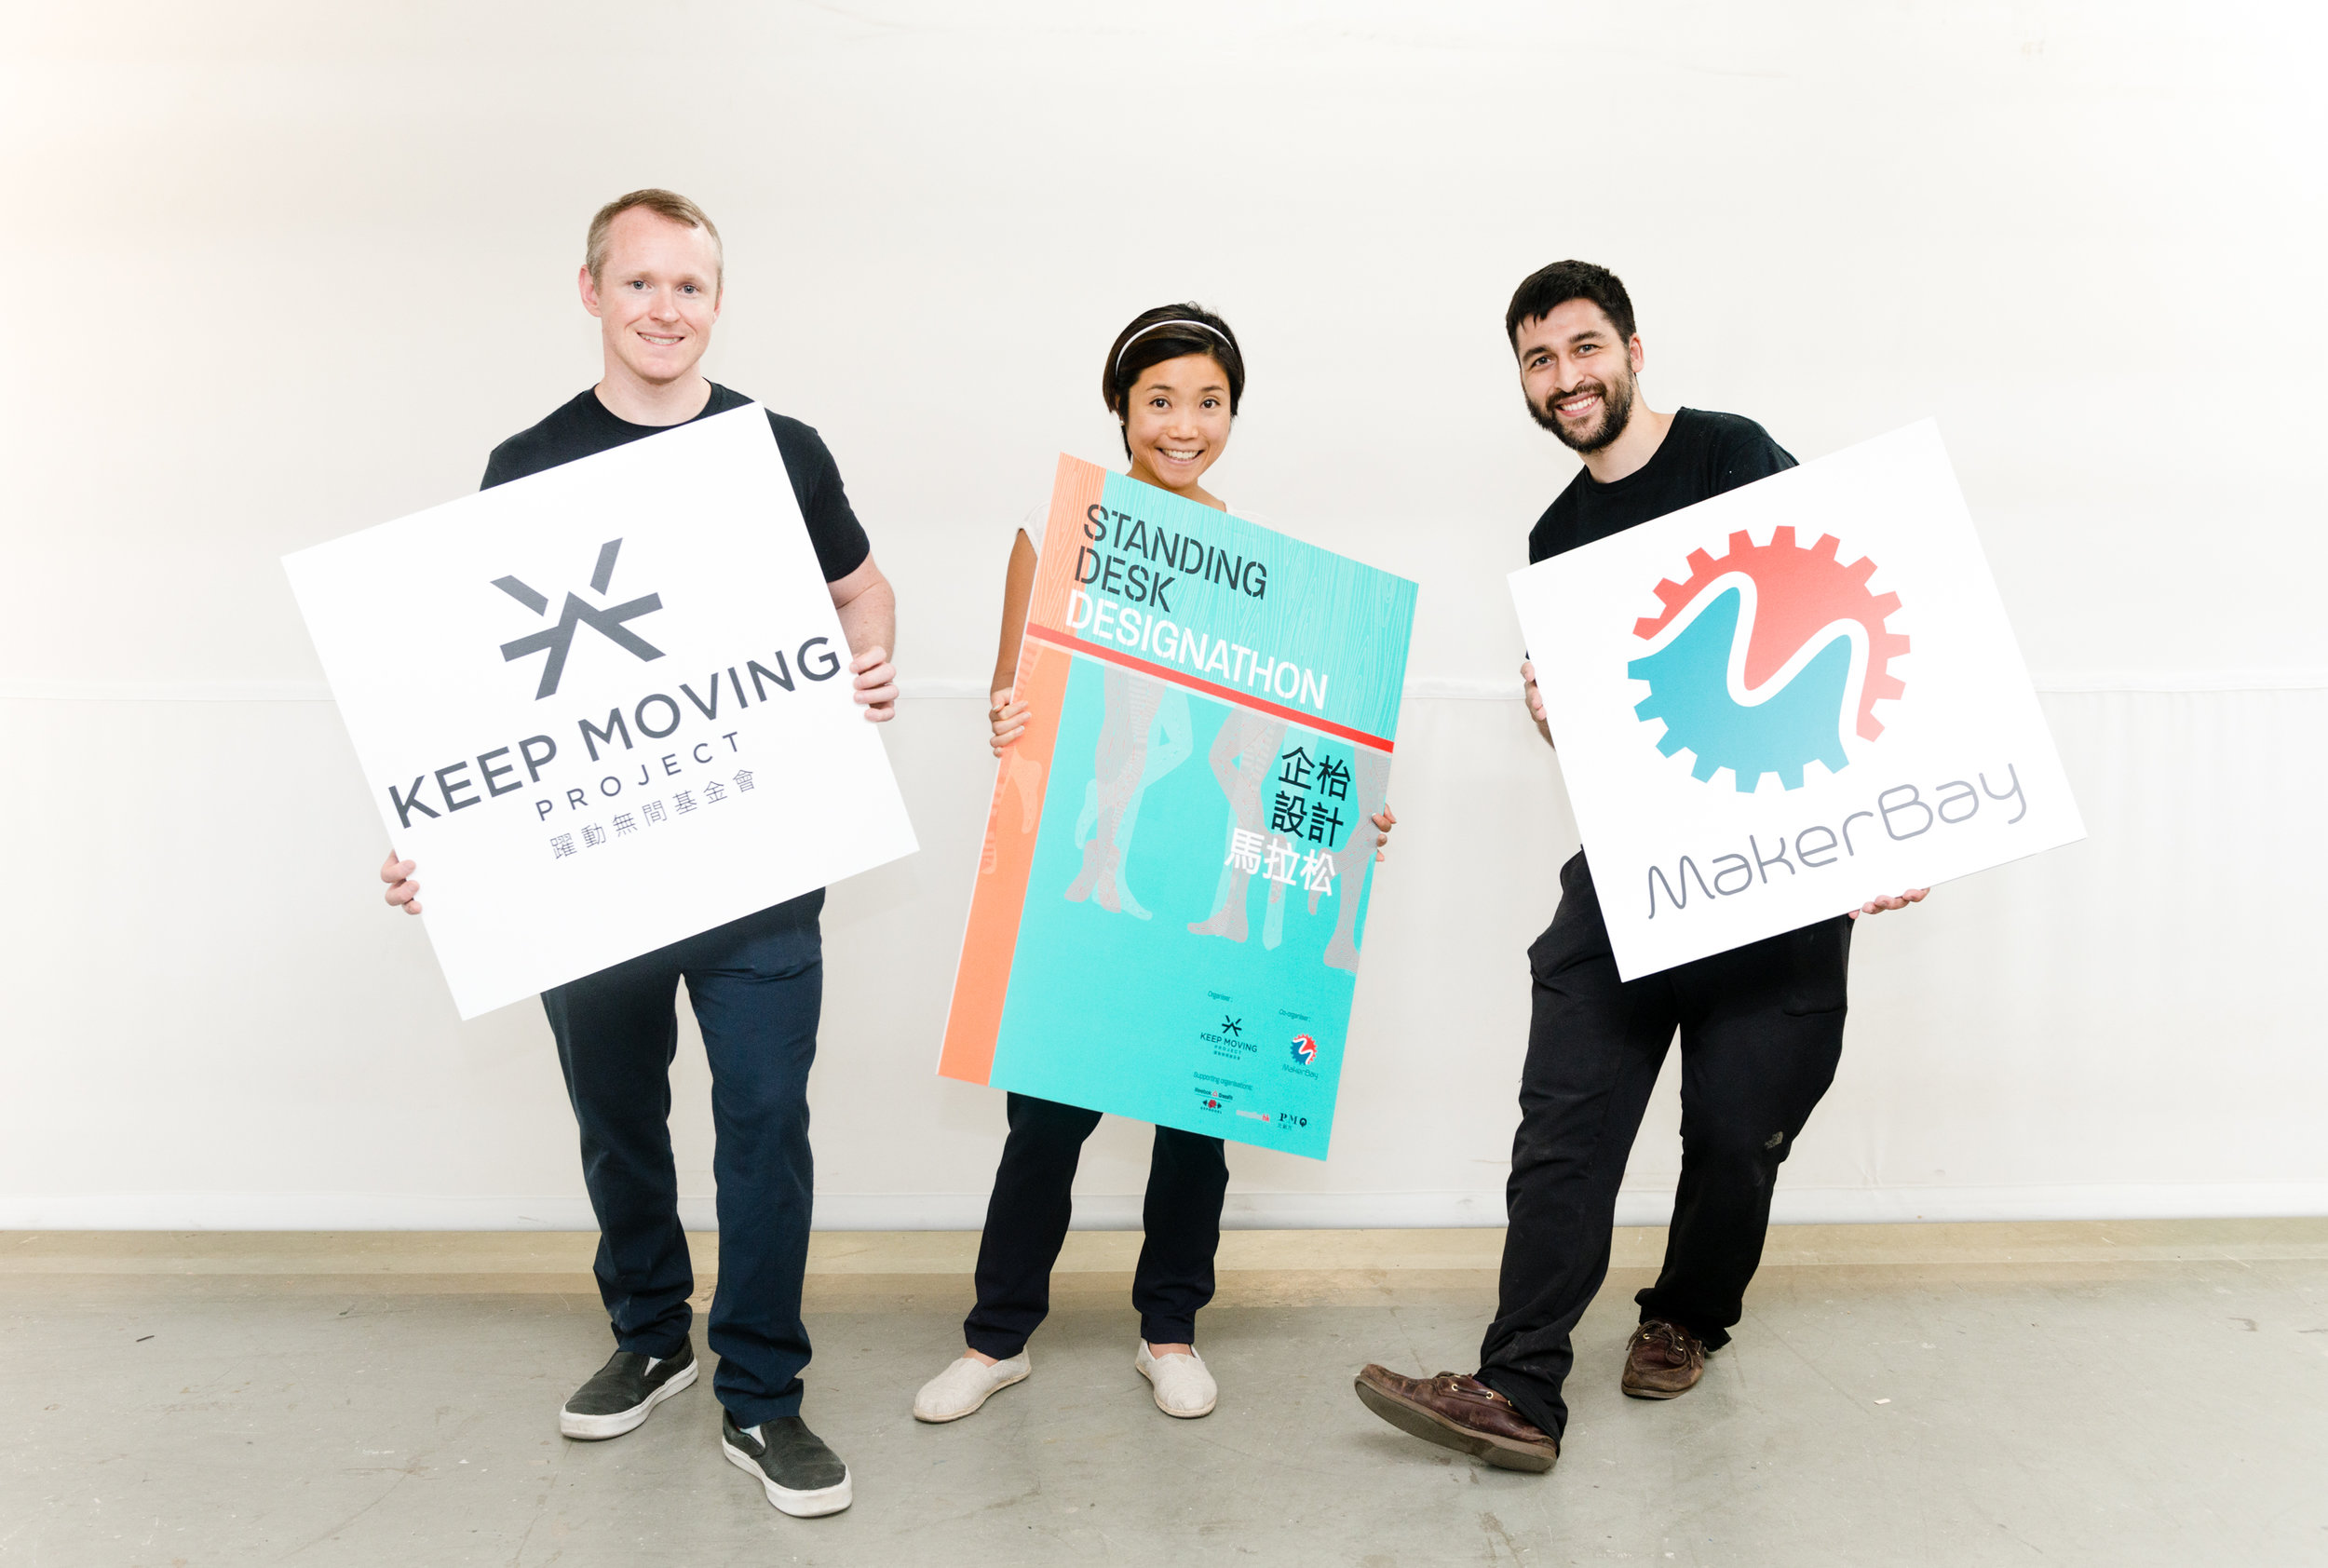 Co-Founder & Managing Director / Cris O'Brien (Left) , Co-Founder & Managing Director Vanessa o'brien / Maker Bay Director Corporation / Cesar Jung Harada ( Right )